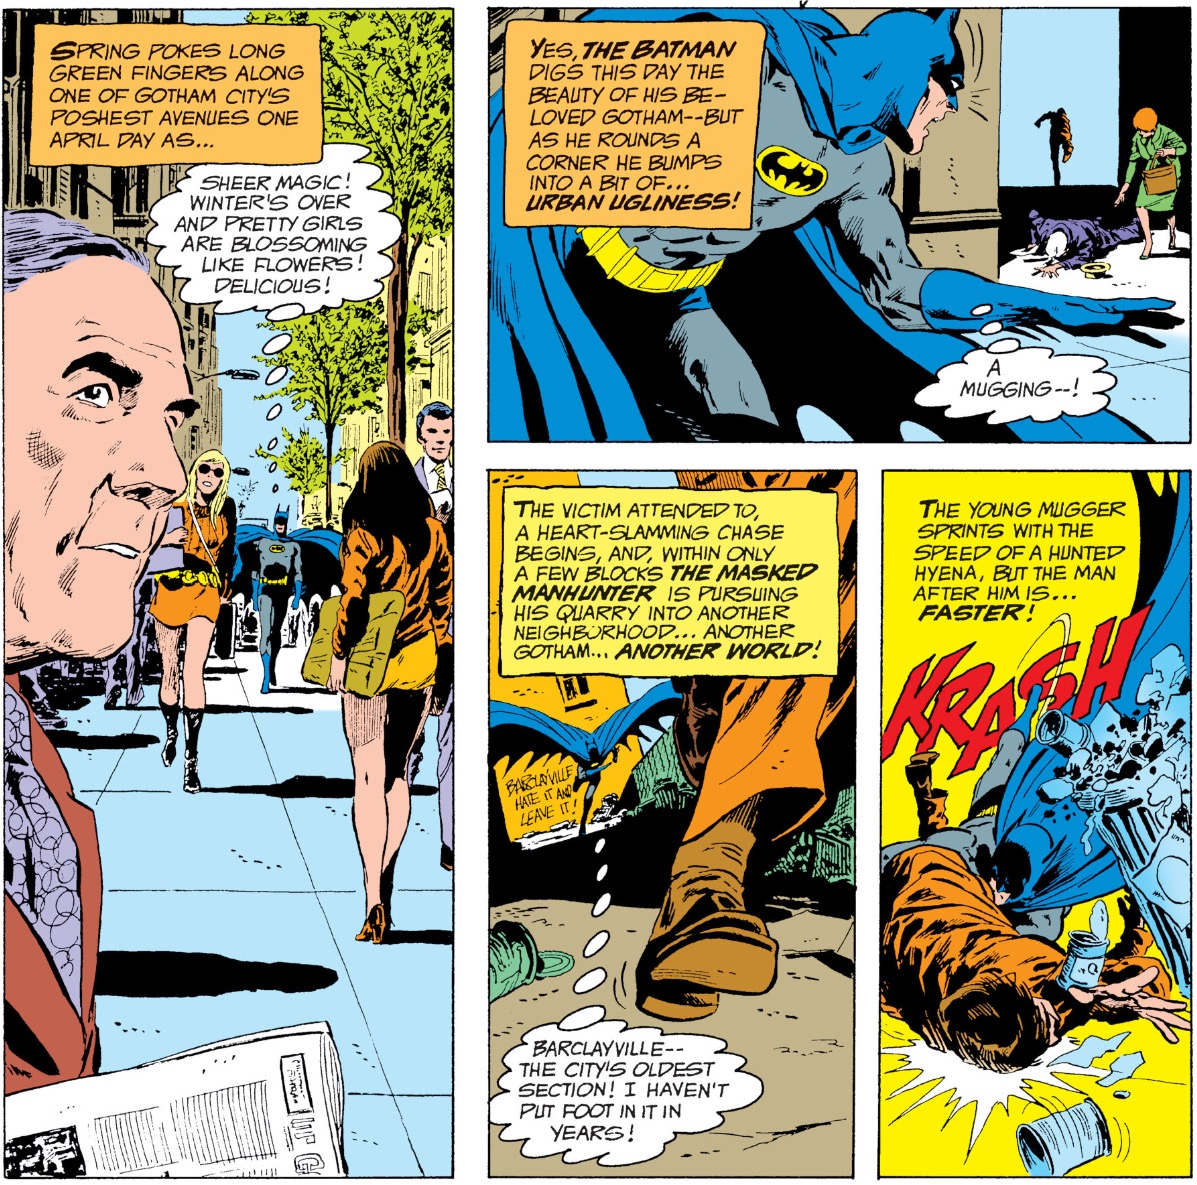 1:04:571:22:55: And Then…ff Has More Stuff He Needs To Get Off His  Chest About Tom King's Batman, Yes, Those Of You Paying Attention Will Not  Be